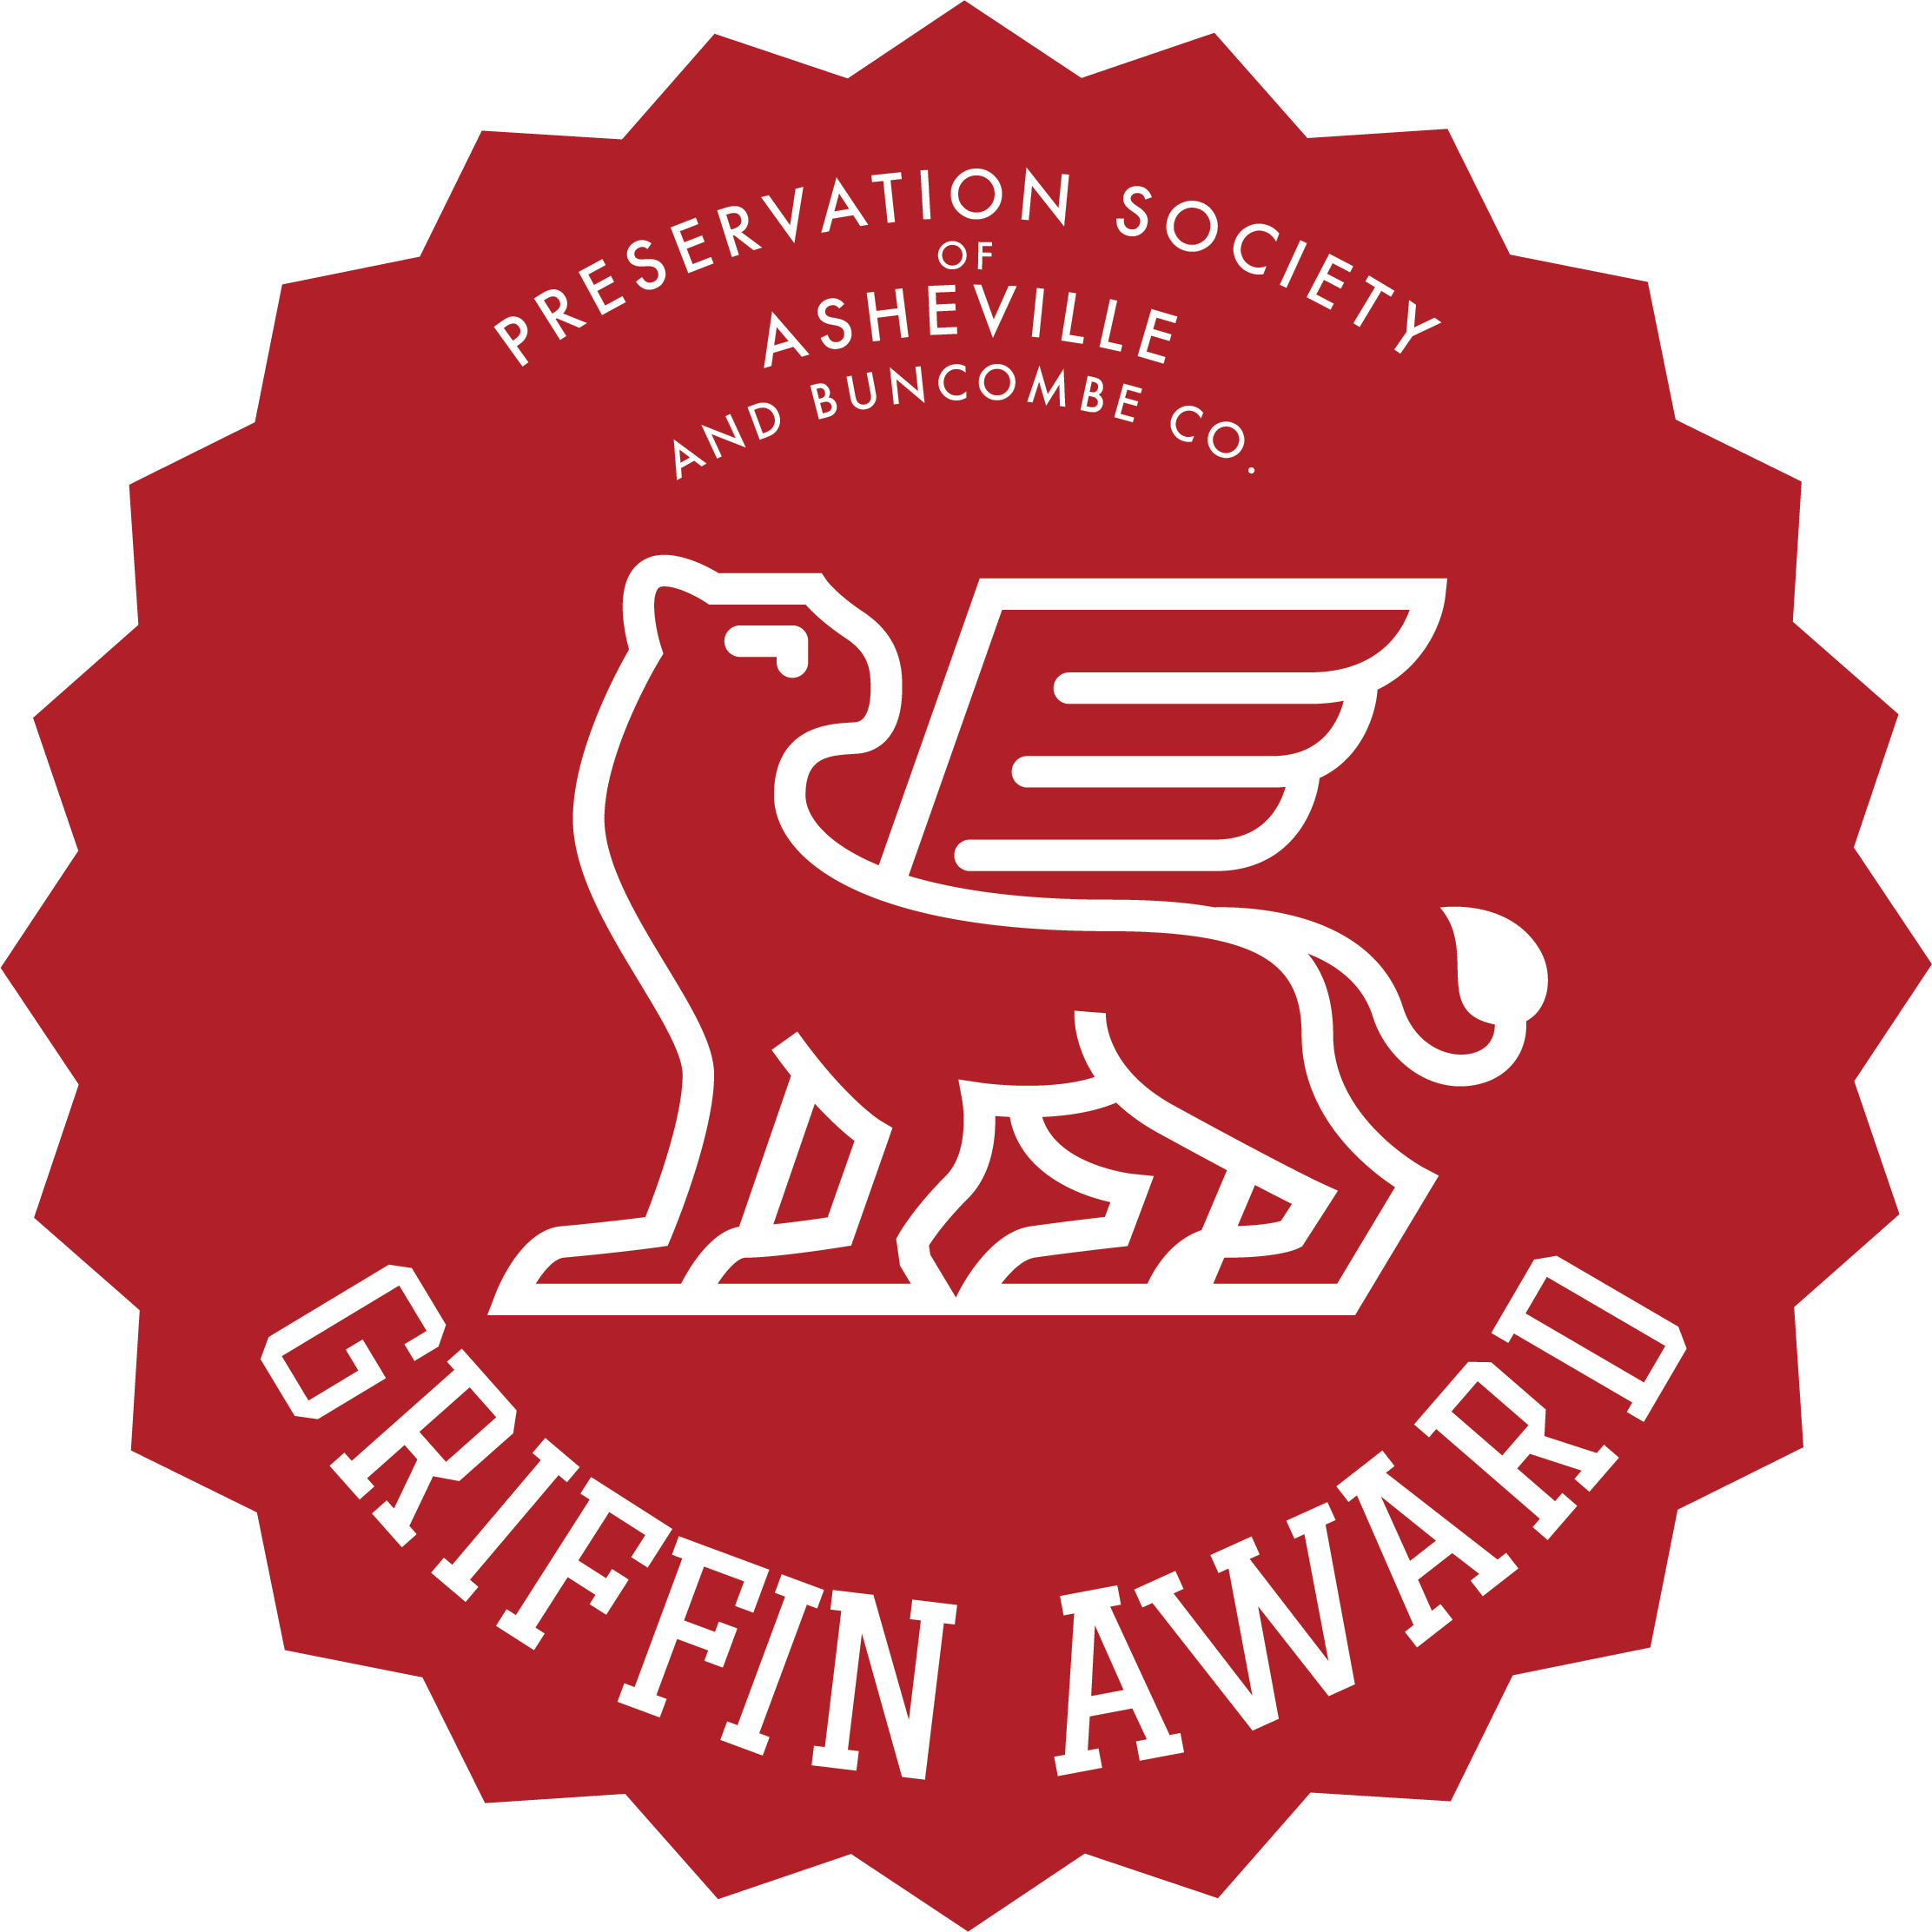 Griffin Award winner from the Preservation Society of Asheville and Buncombe County